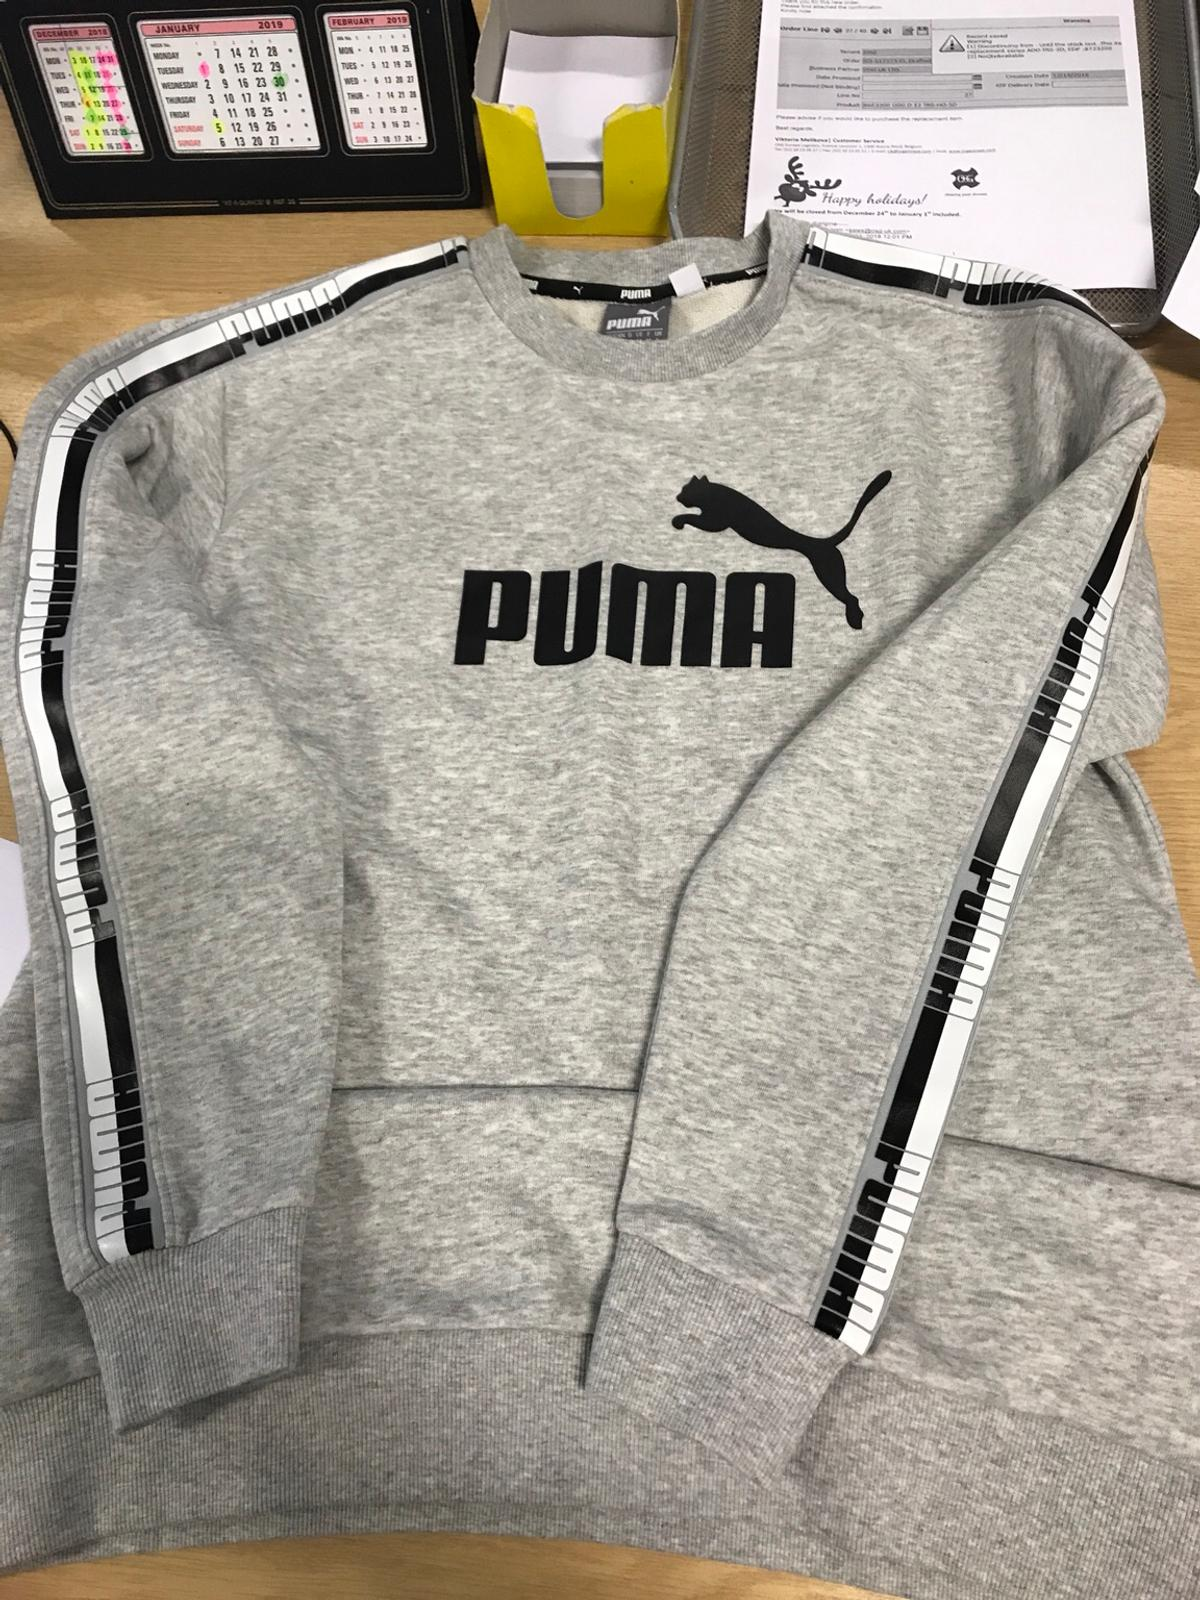 2cbcebf4de93 BNWT- ladies Puma tracksuit Small in SS14 Basildon for £30.00 for ...